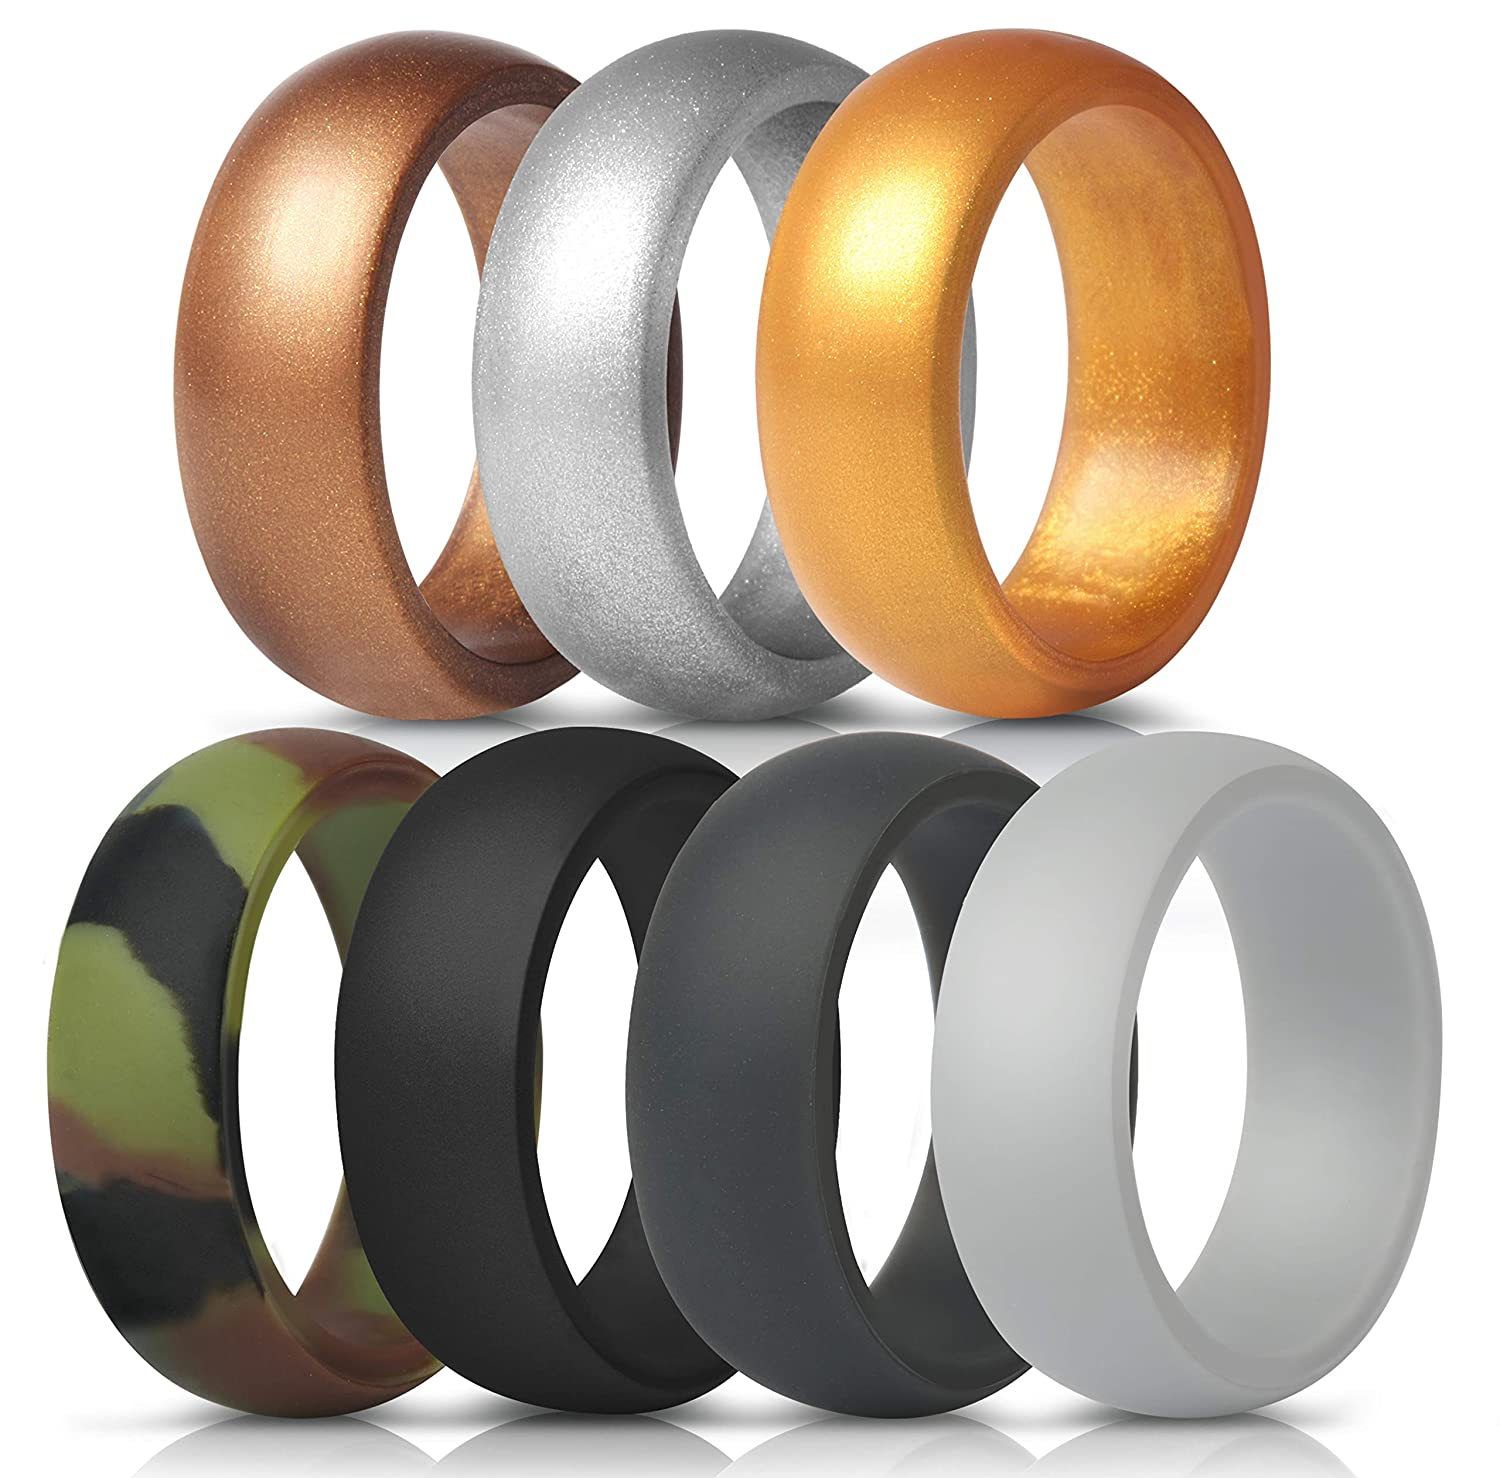 7 Rings // 1 Ring Wedding Bands for Men 8.7 mm Wide 2.5mm Thick ThunderFit Silicone Rings